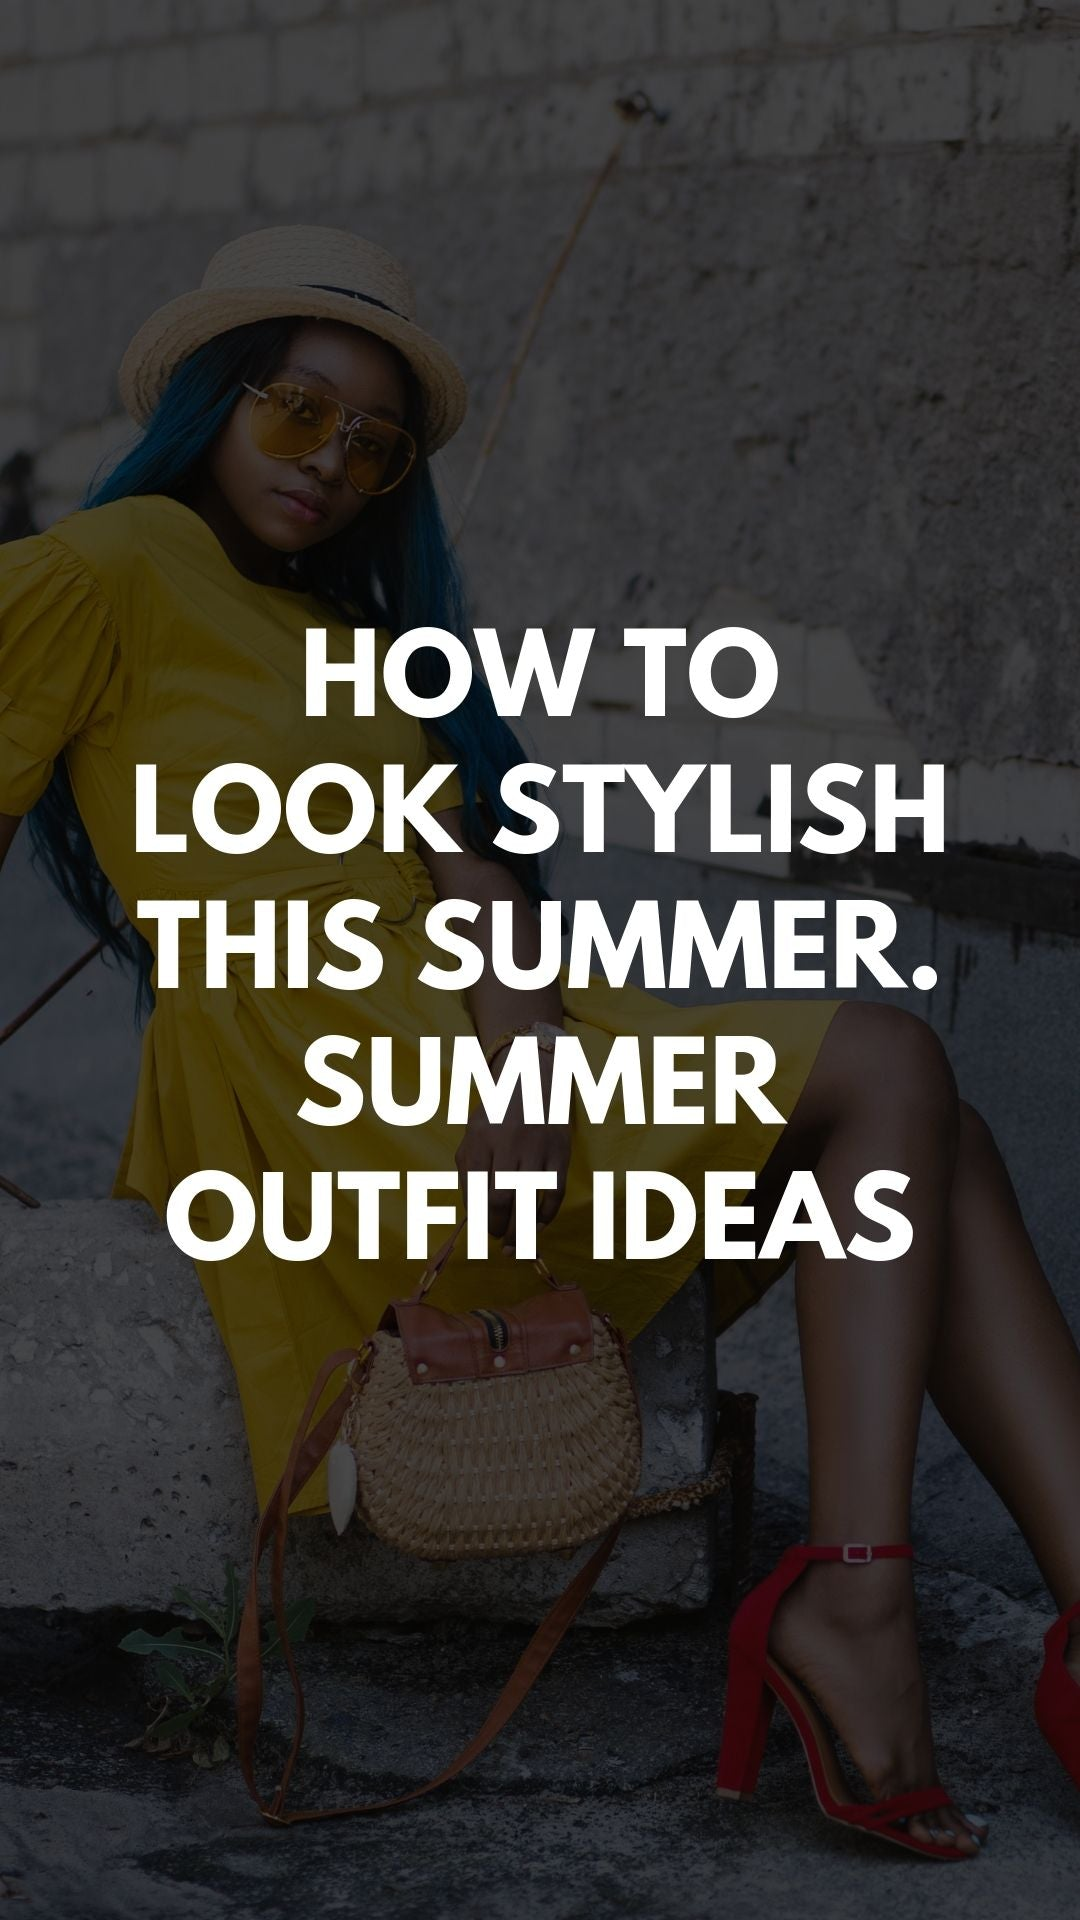 How To Look Stylish This Summer. Summer Outfit Ideas